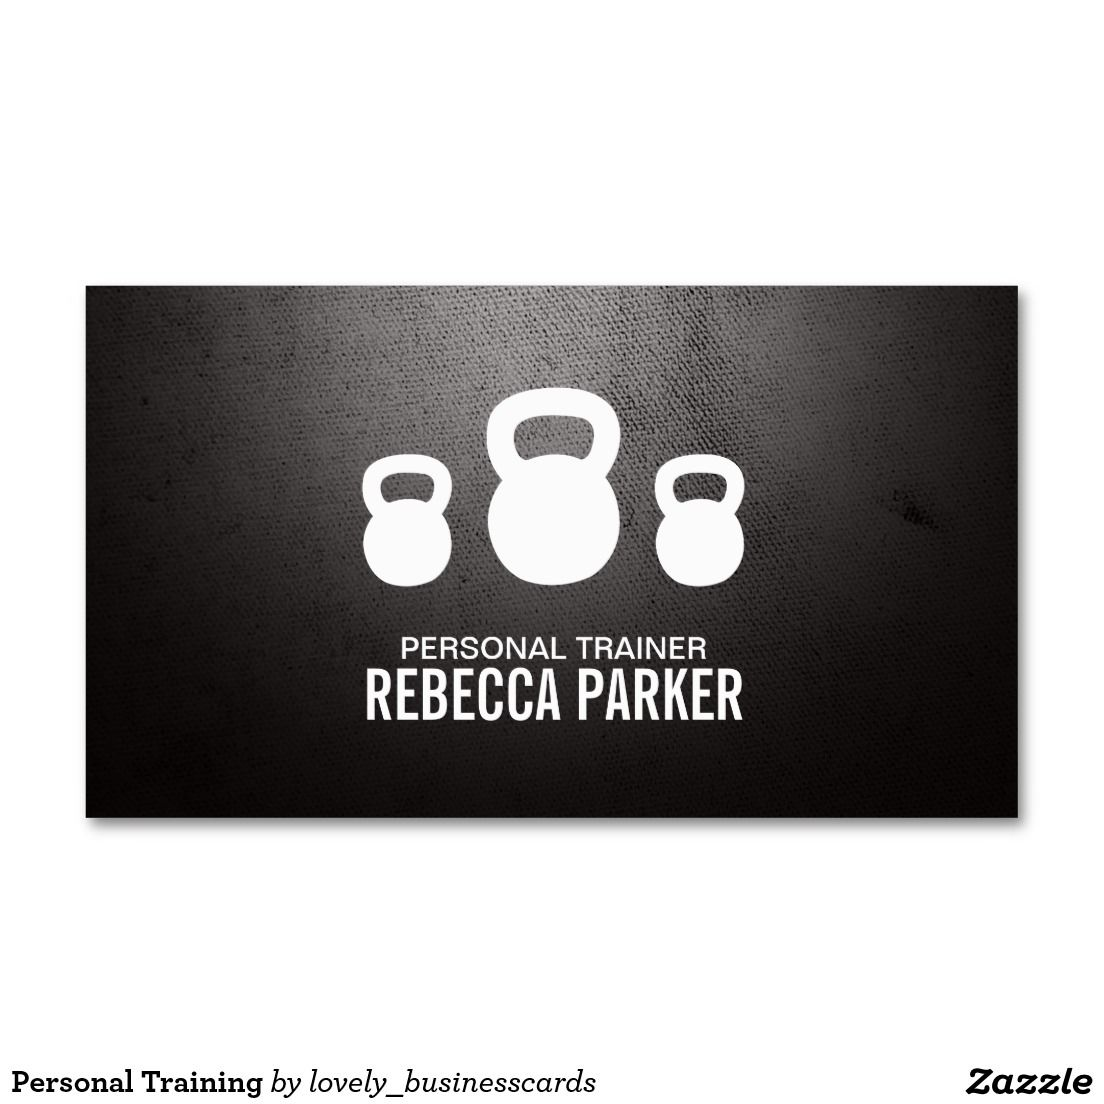 Personal Training Business Card | Crossfit exercises and Support ...